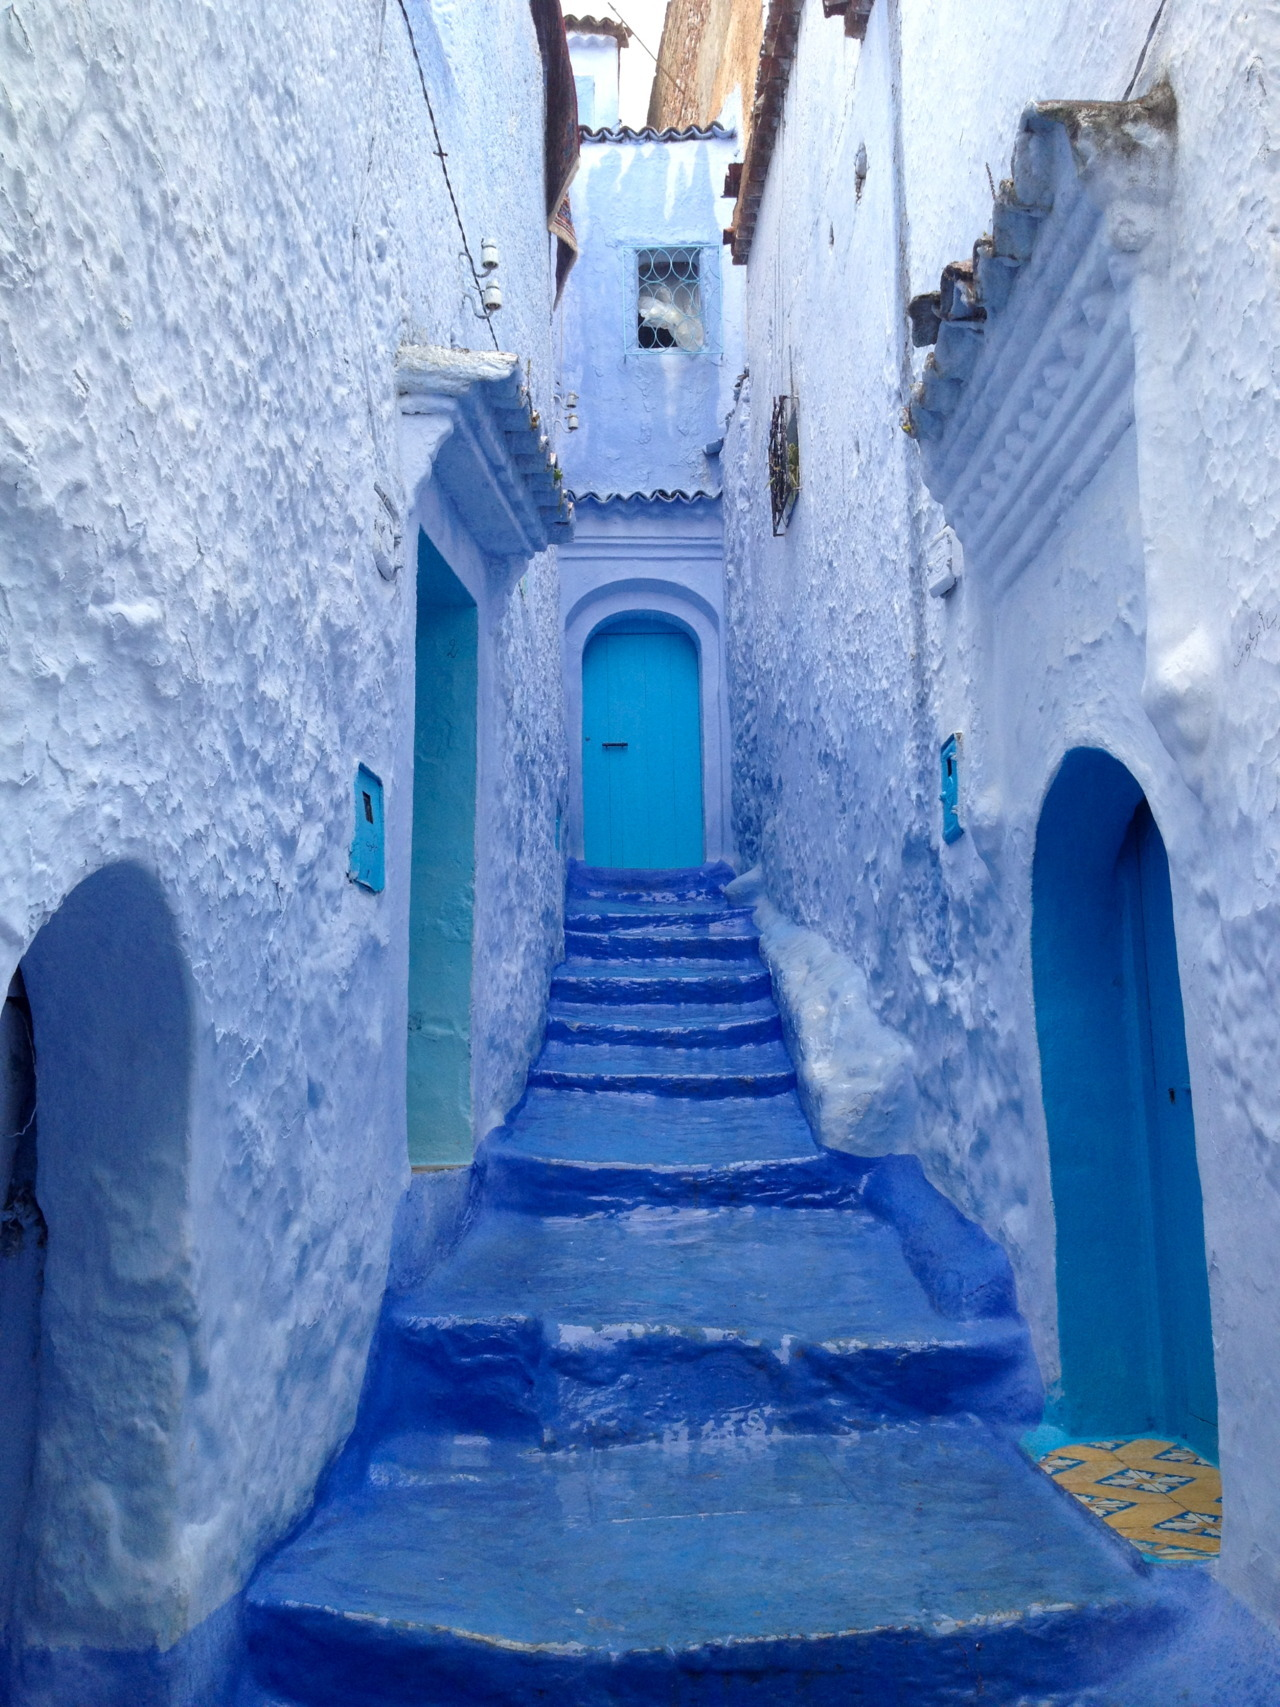 Morocco, Africa. They paint their town blue and white to keep it cool during the summer.